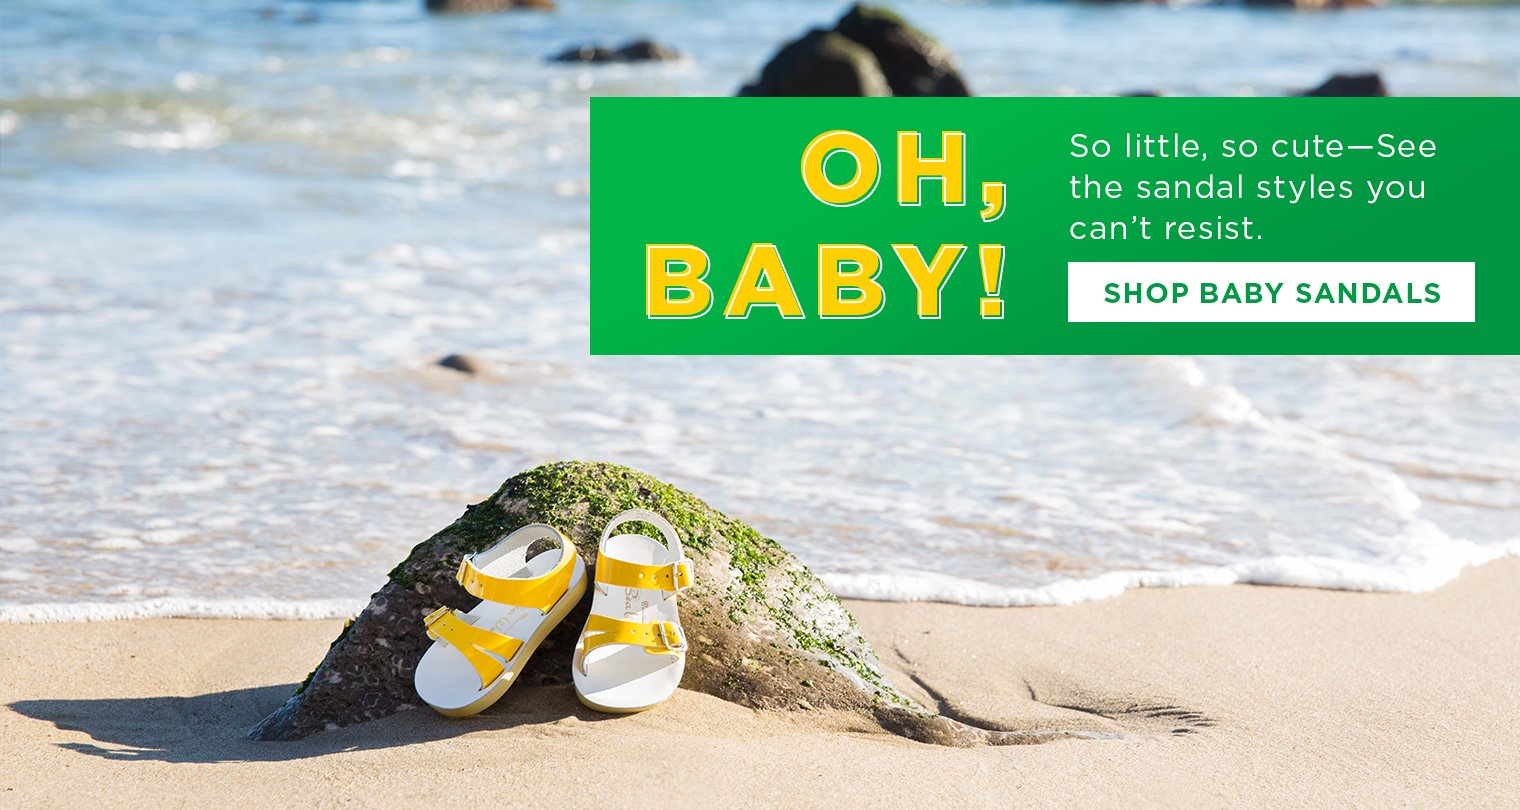 Image of baby sandals on the beach with ocean in background